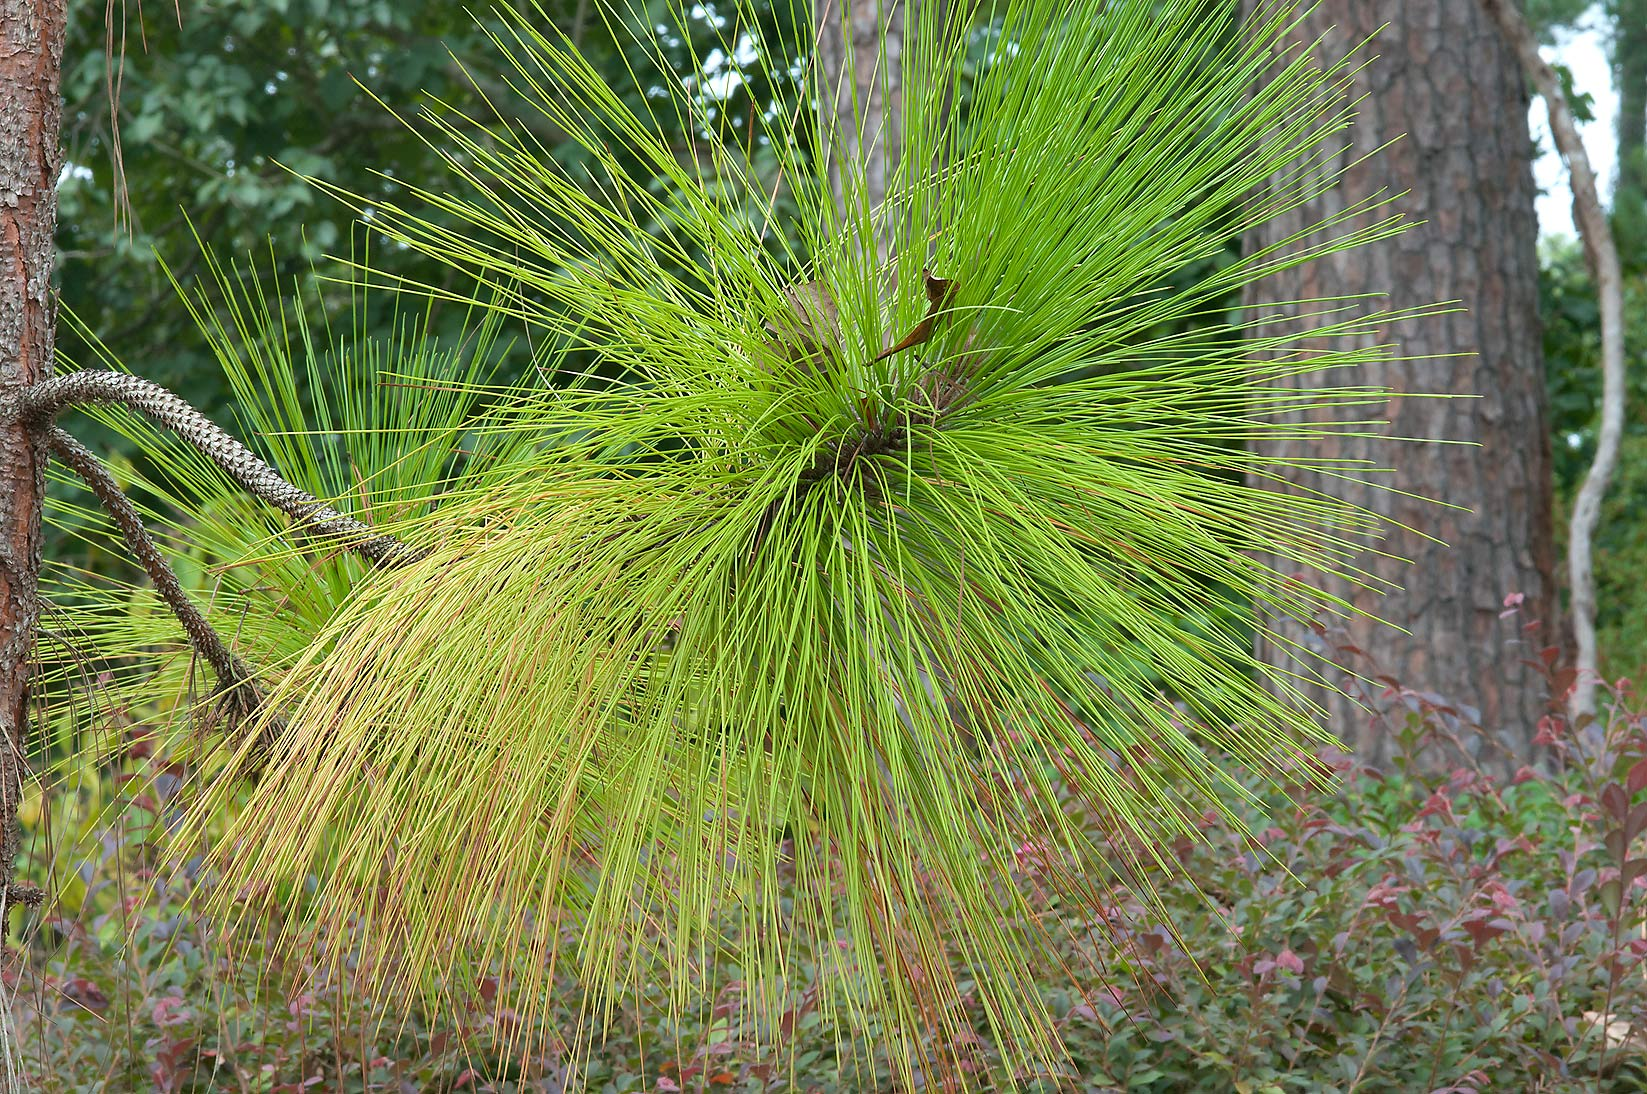 Pine with long needles in Mercer Arboretum and...Gardens. Humble (Houston area), Texas